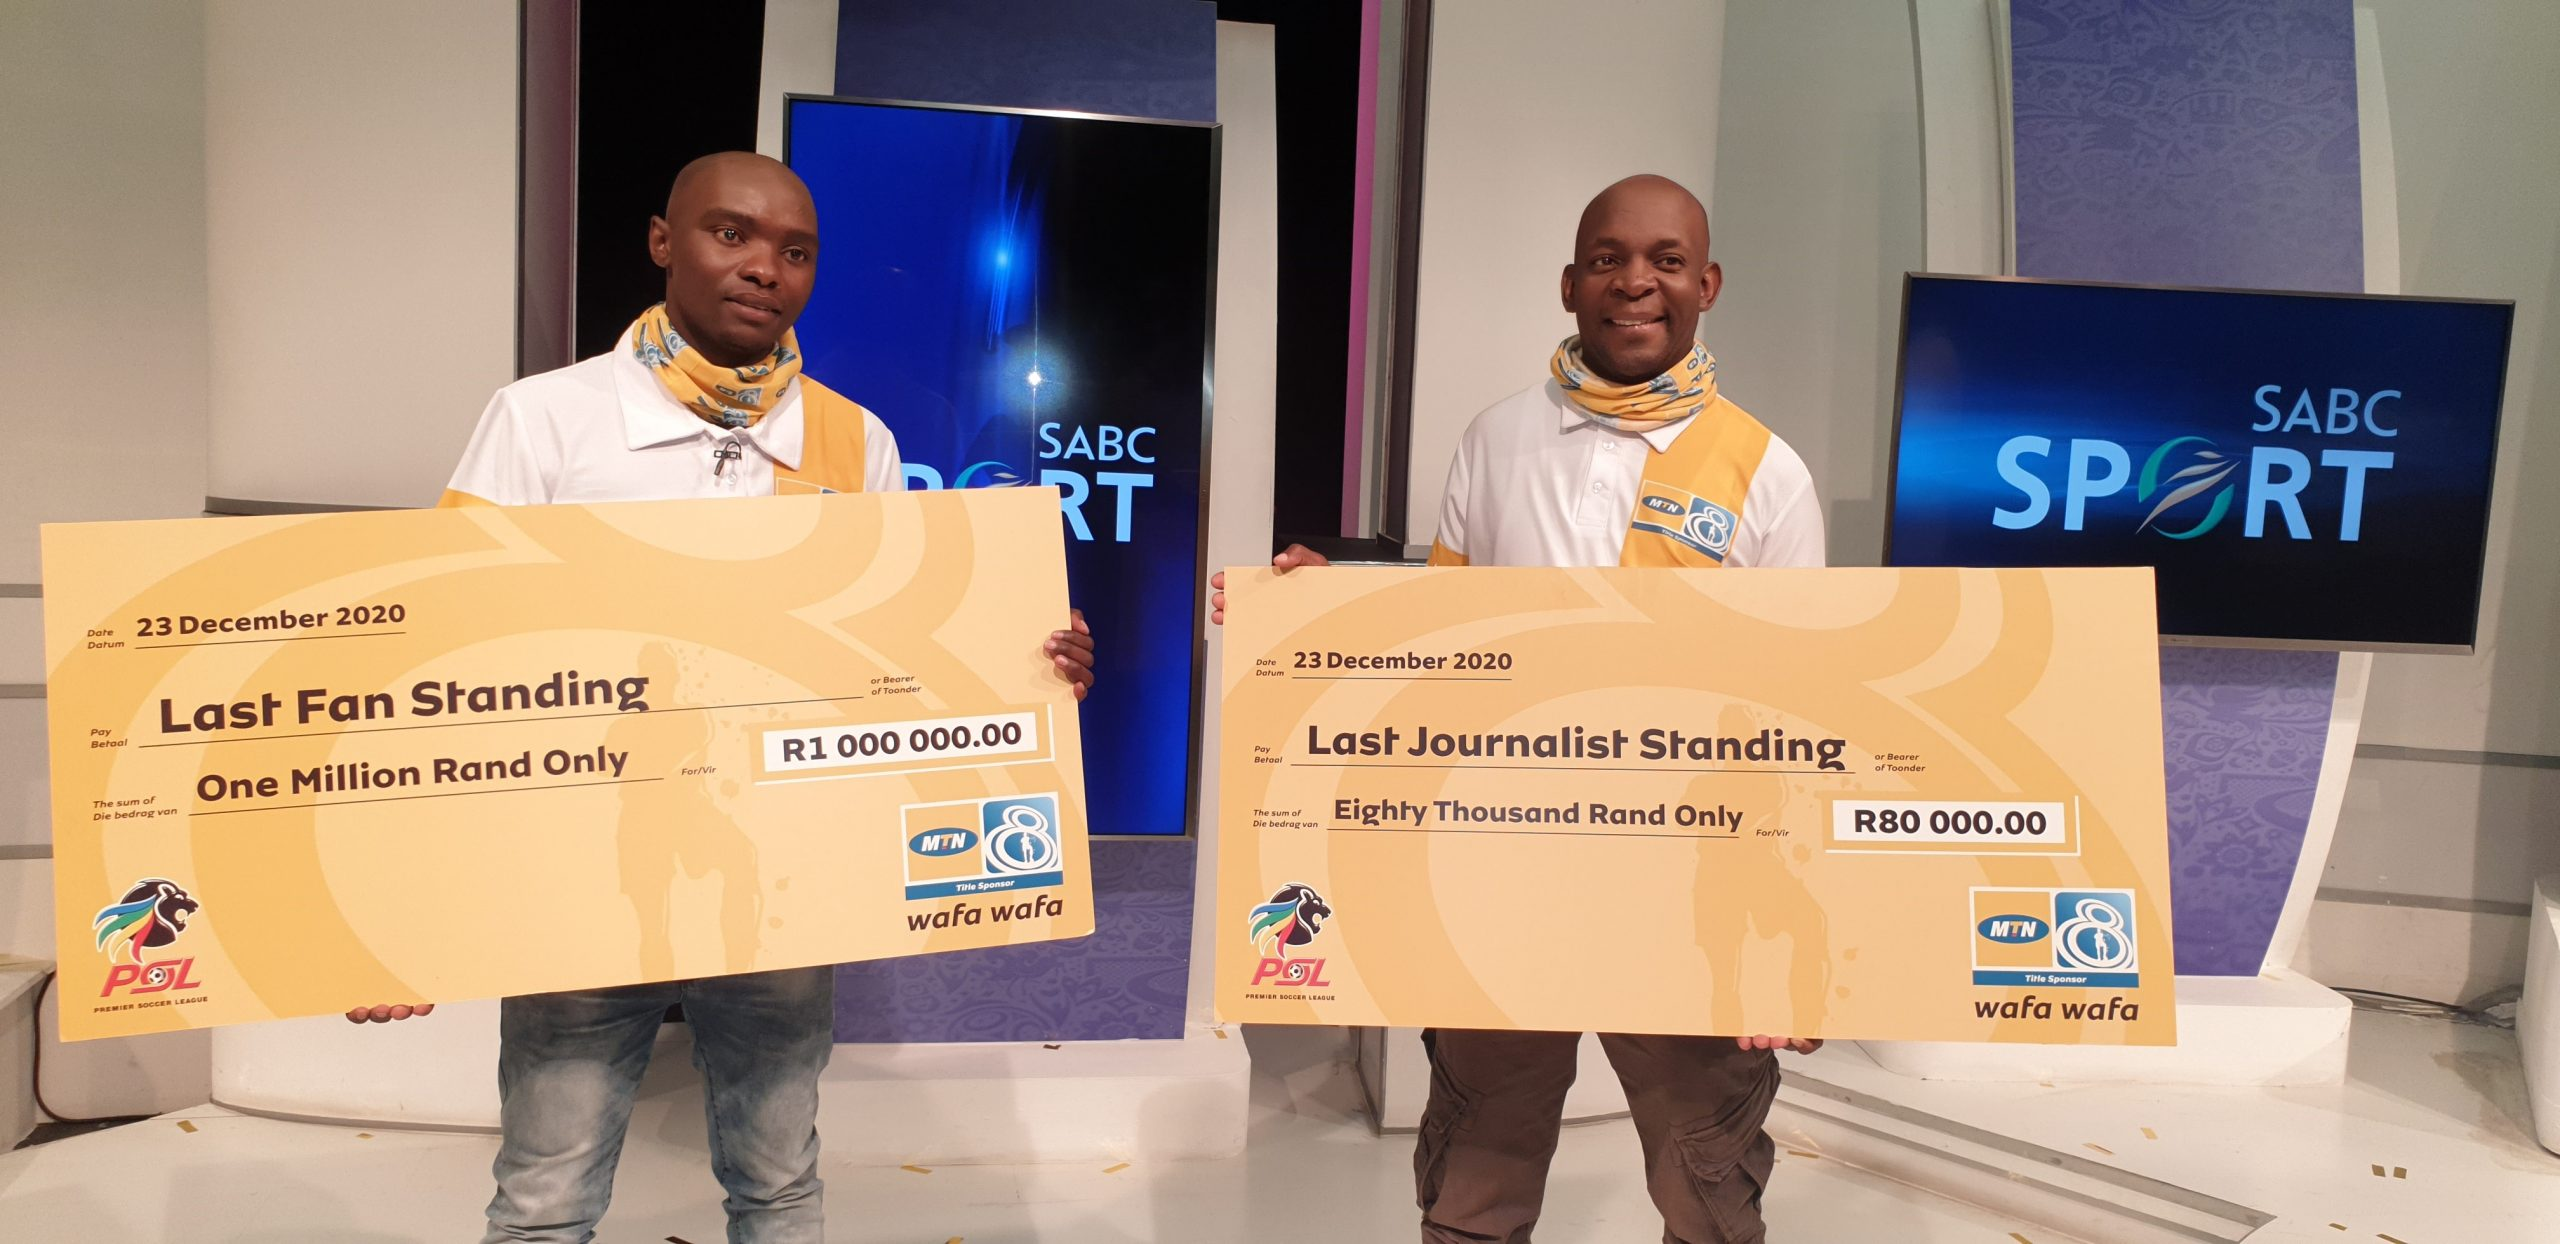 The 2020 MTN8 Last Fan Standing and the Last Journalist Standing winners announced